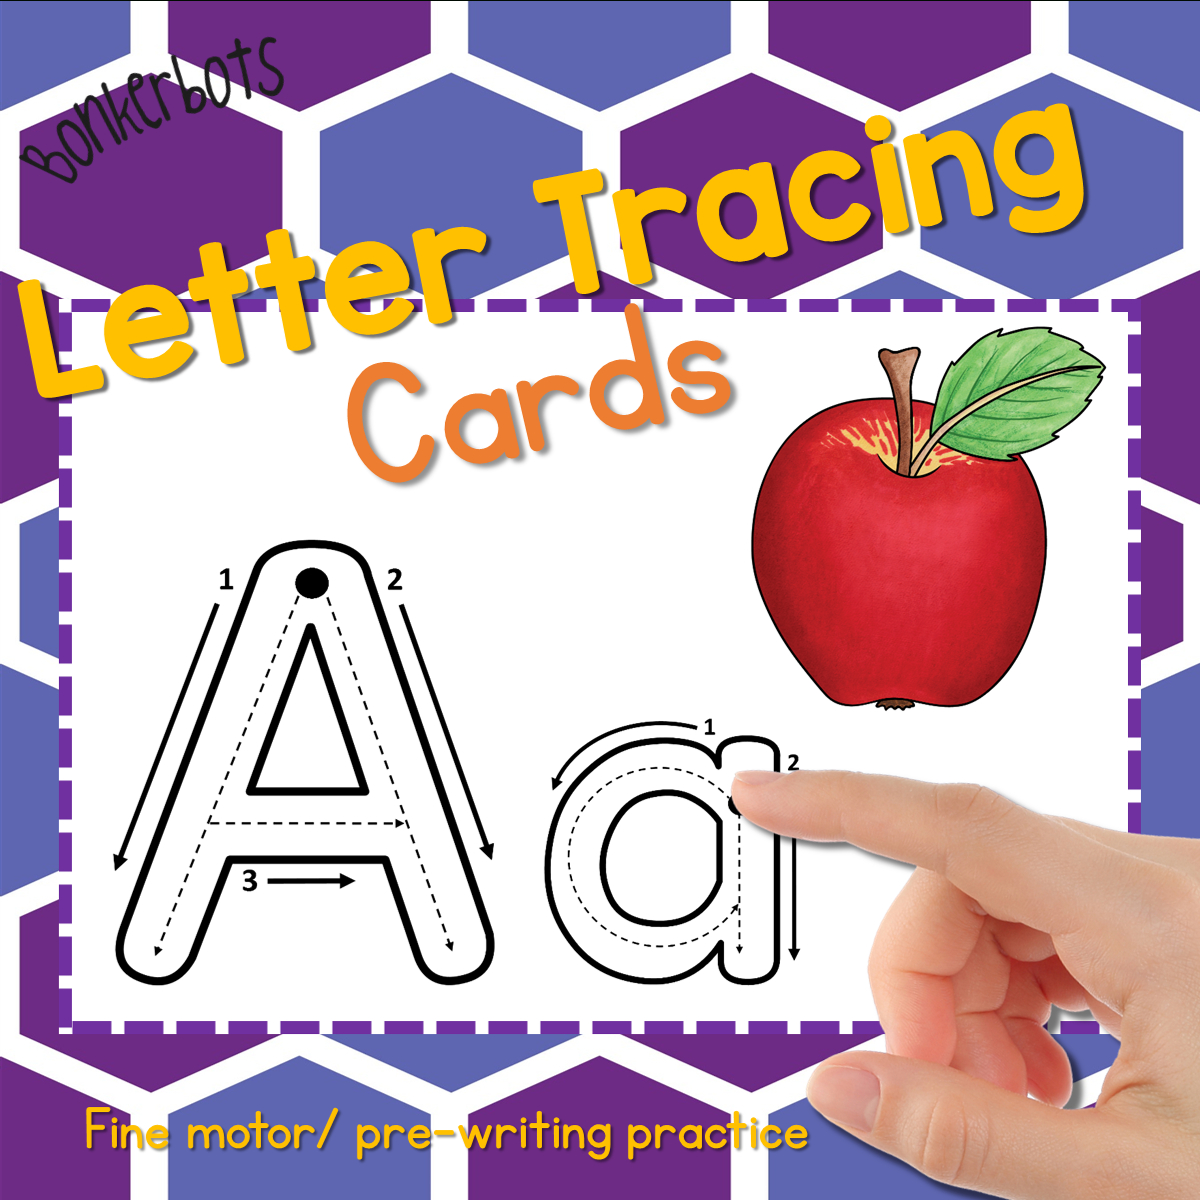 Letter Tracing Cards - Bonkerbots with regard to Alphabet Tracing Cards